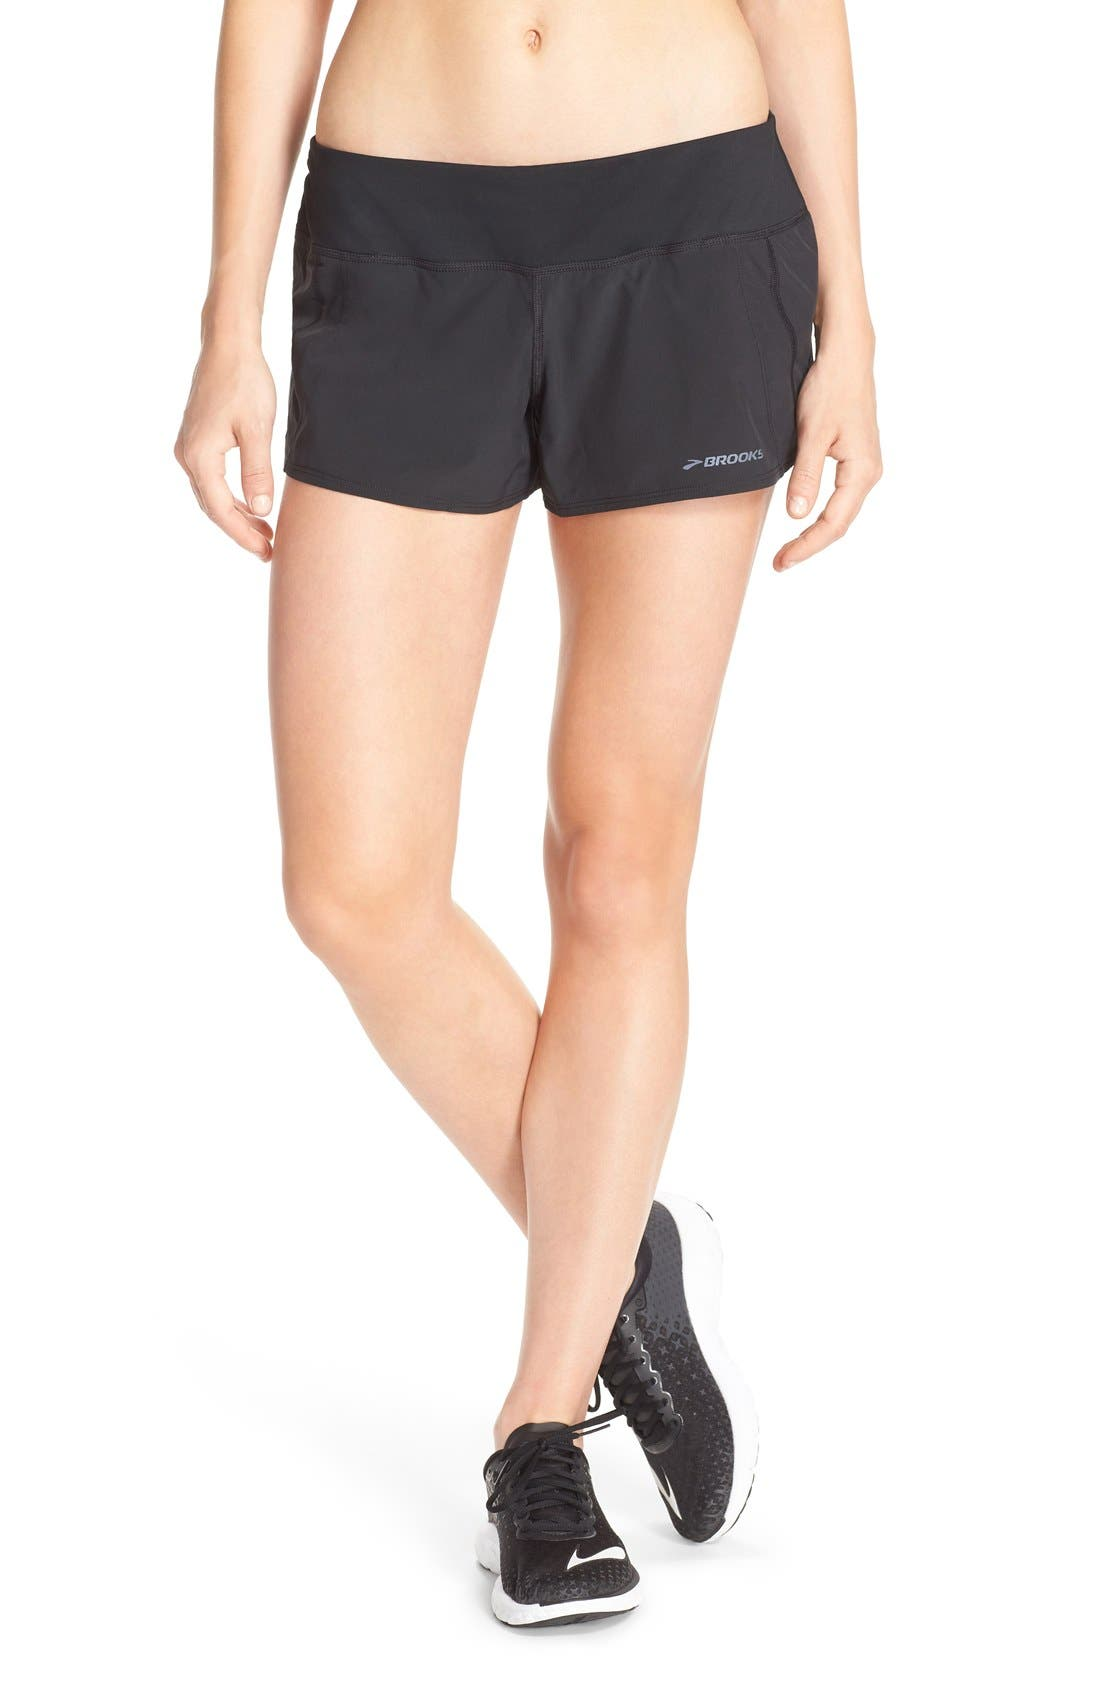 'Chaser 3' Running Shorts,                         Main,                         color, Black